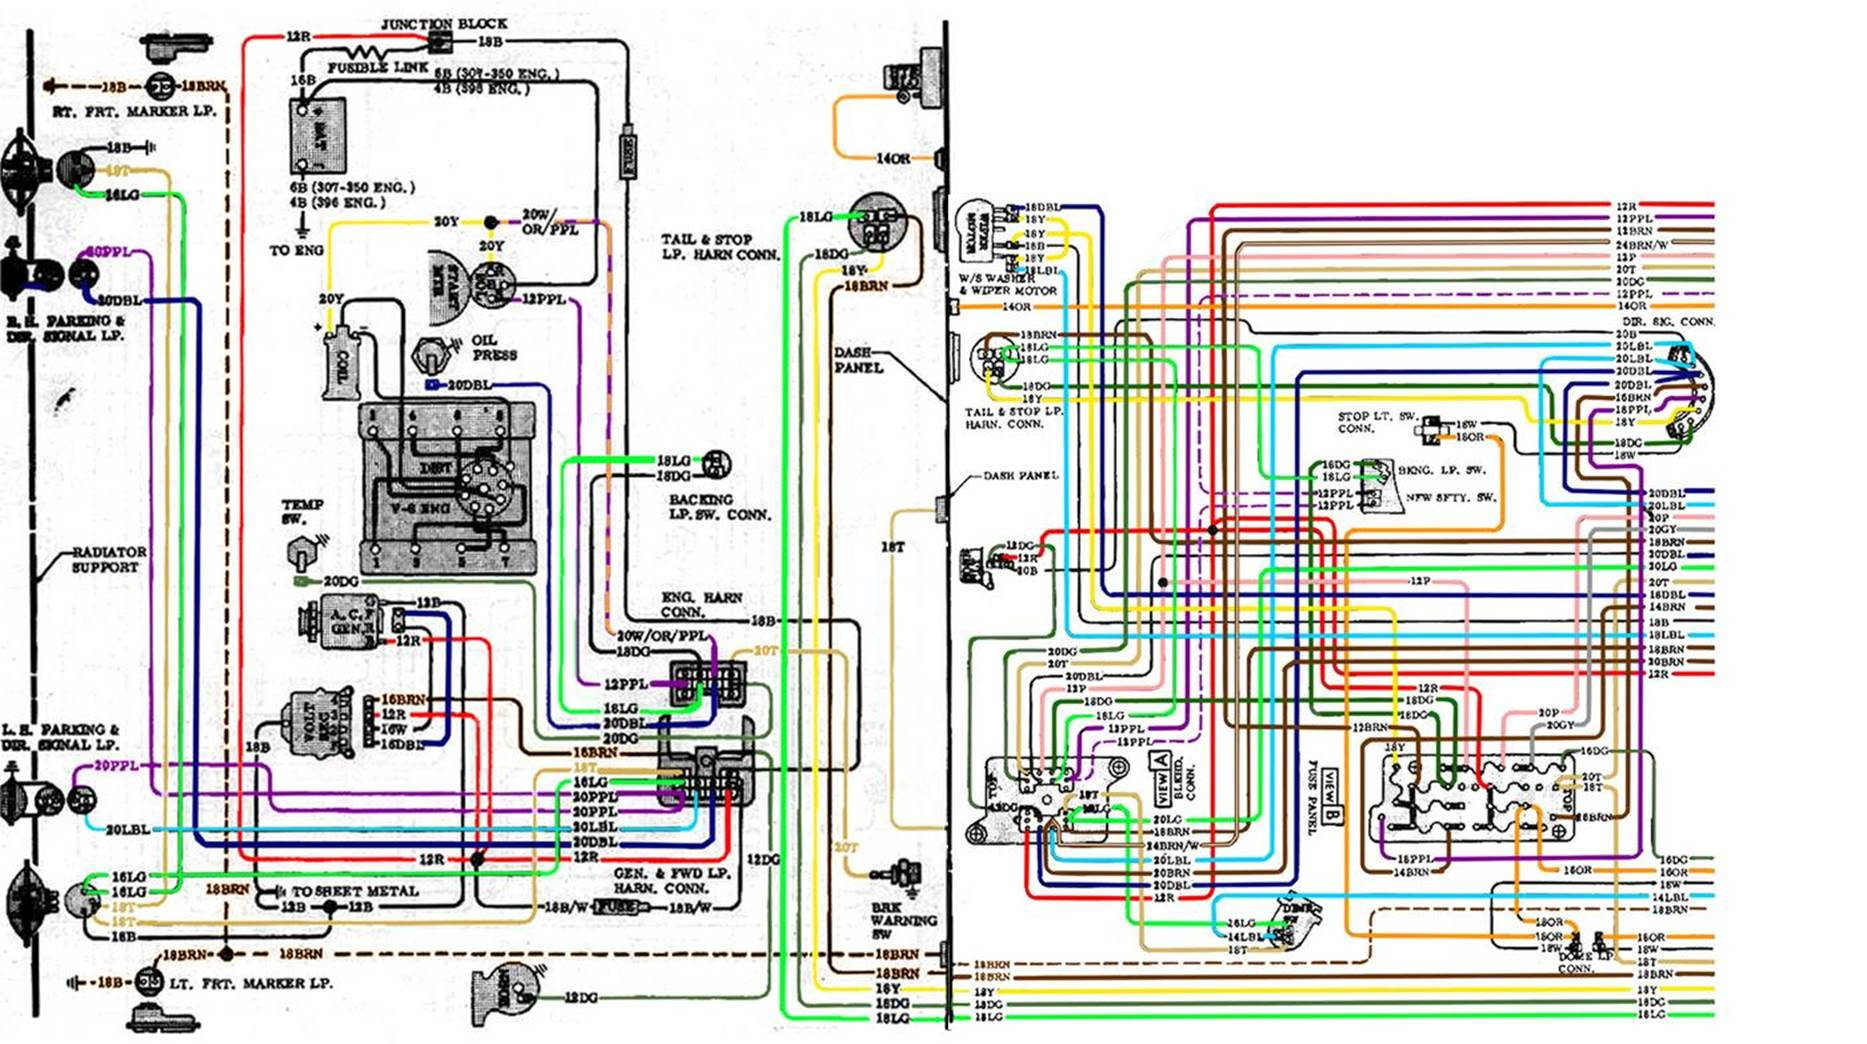 67-72 chevy wiring diagram  outintheshop.com